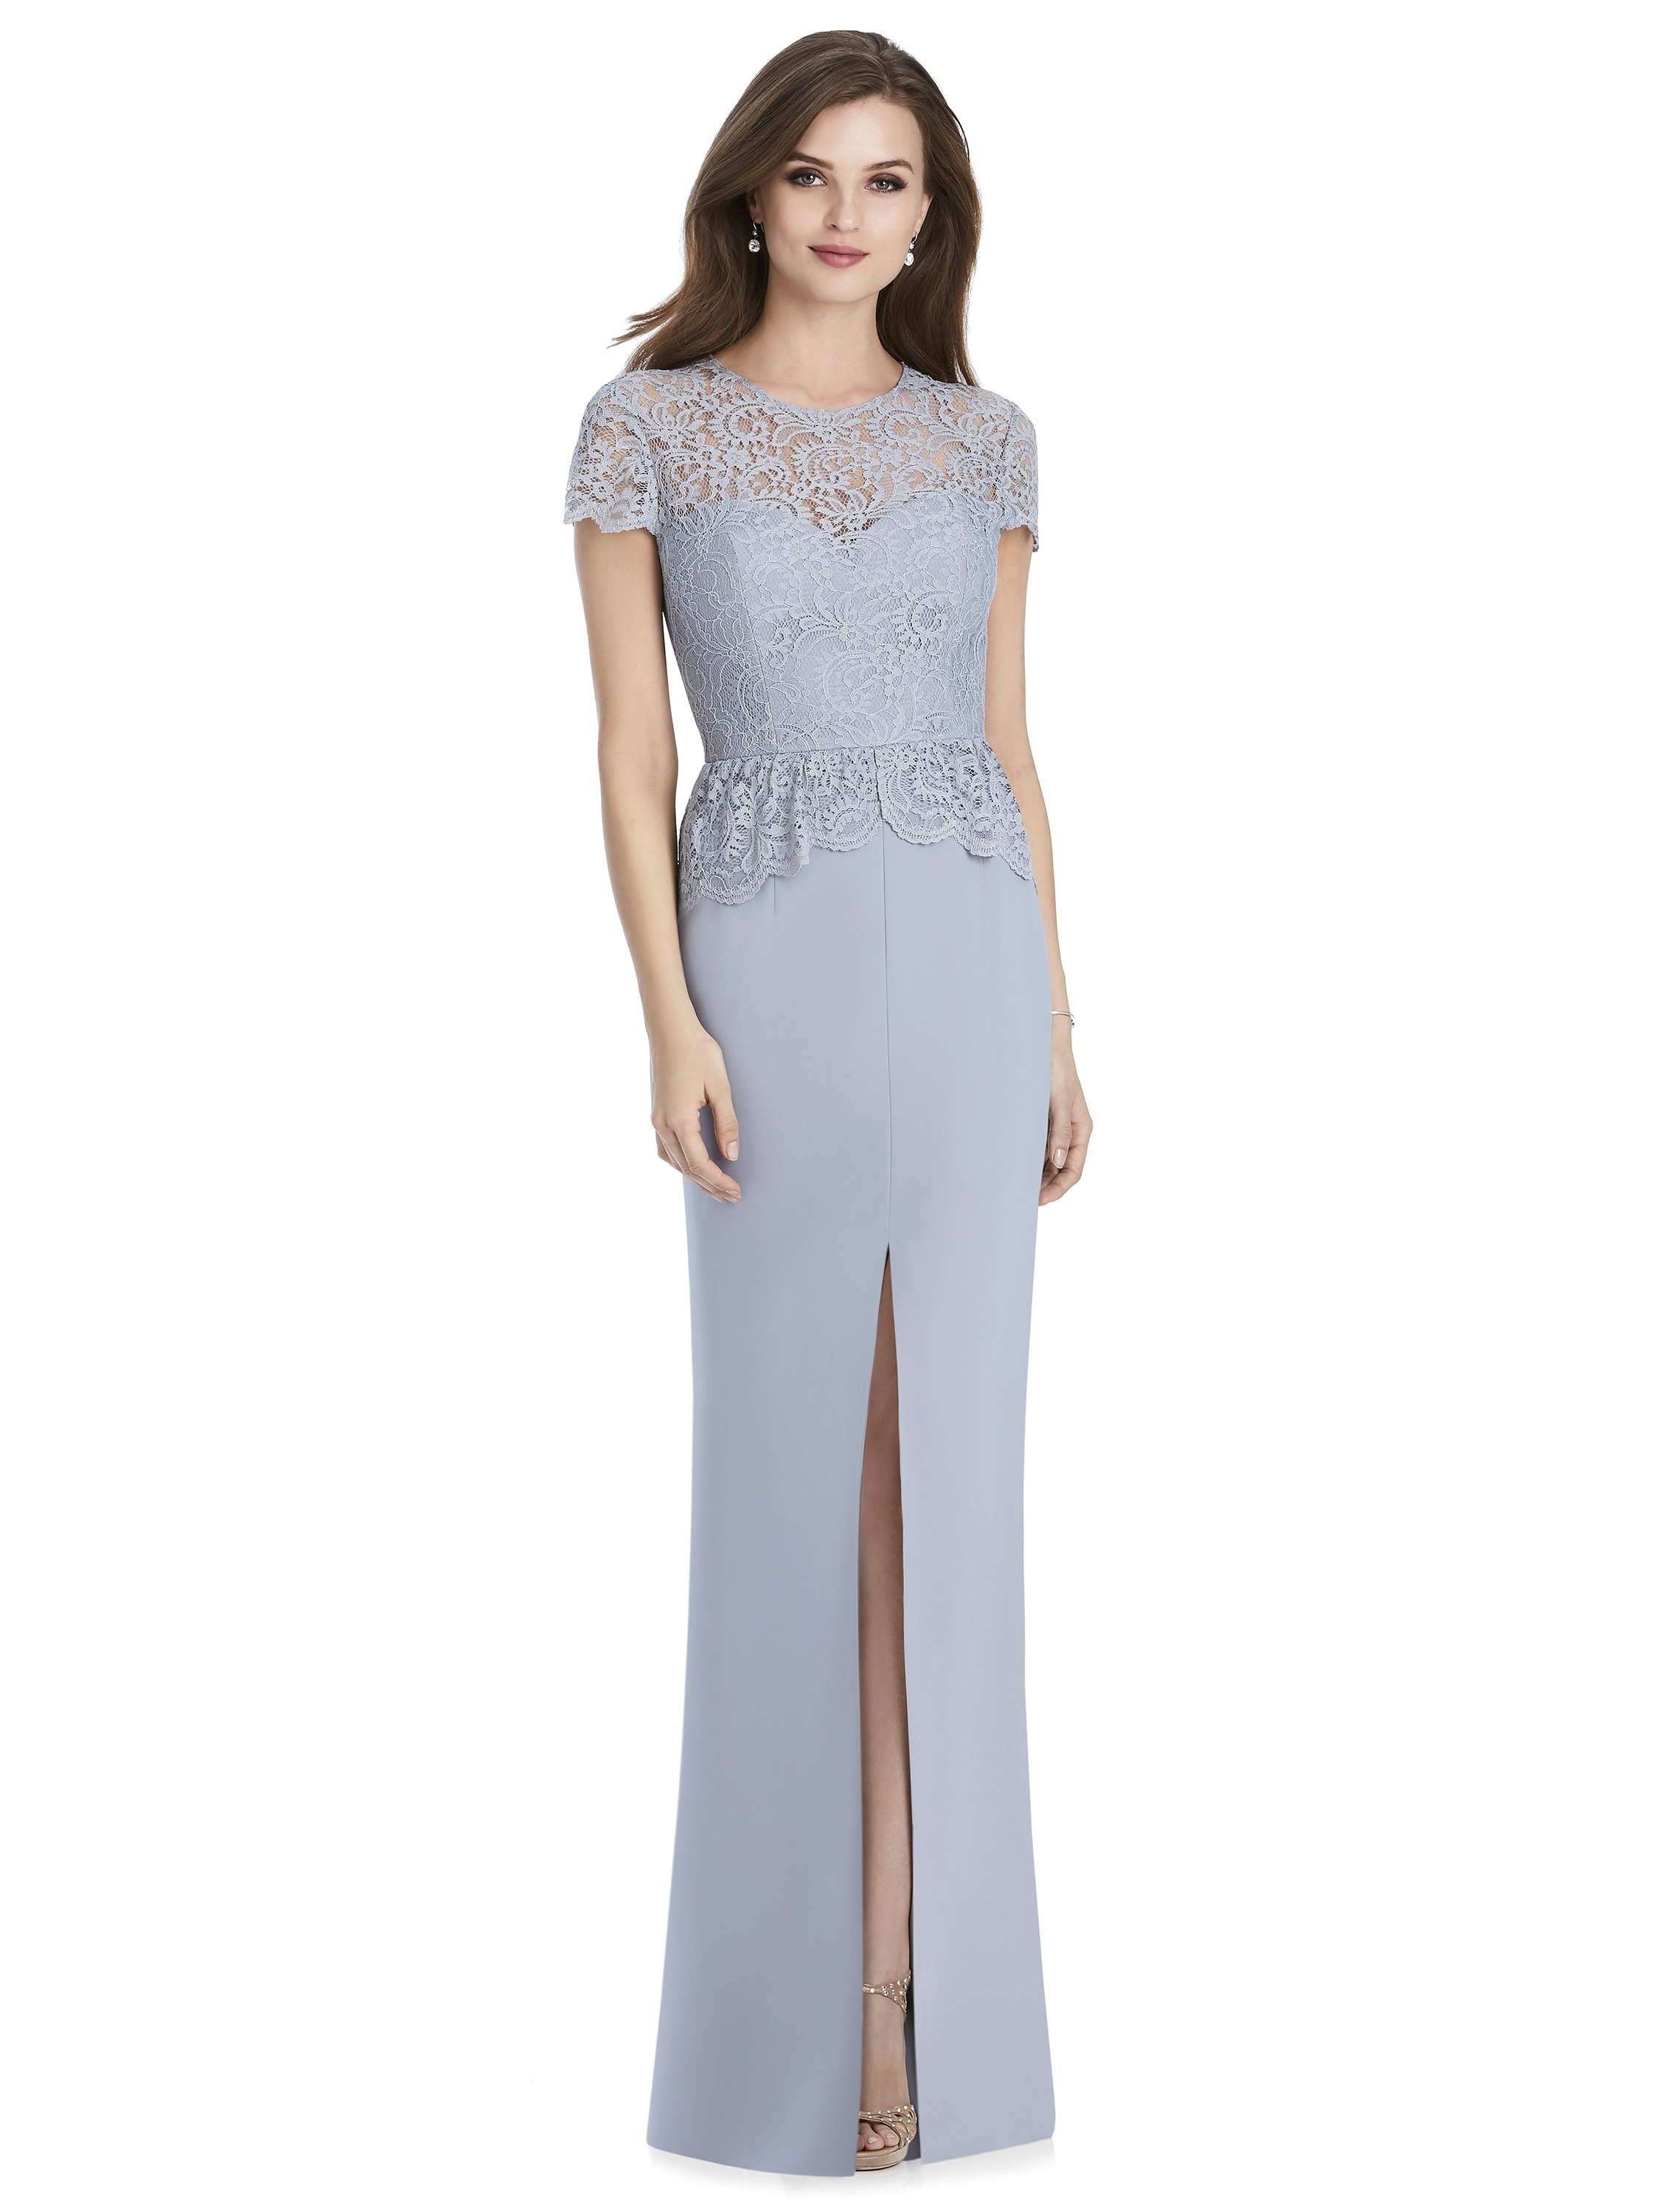 Jenny Packham by The Dessy Group, Pale Blue Bridesmaid Dress with lace cap sleeves – Front